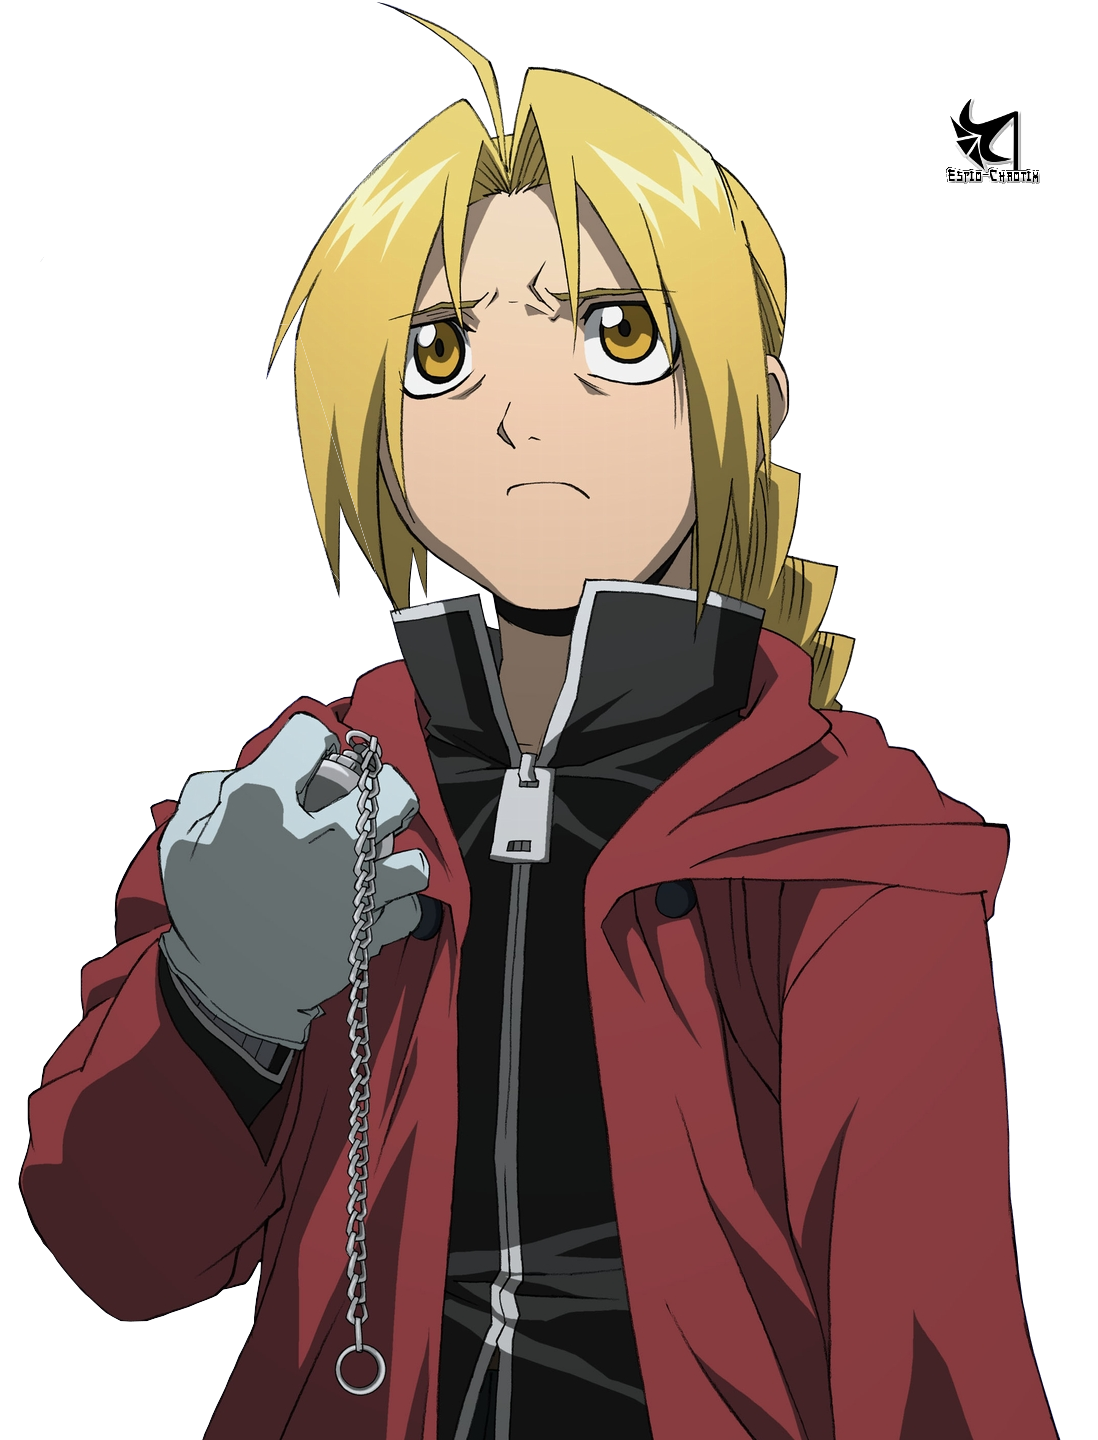 Lt strong arms fma png. Ed elric google search